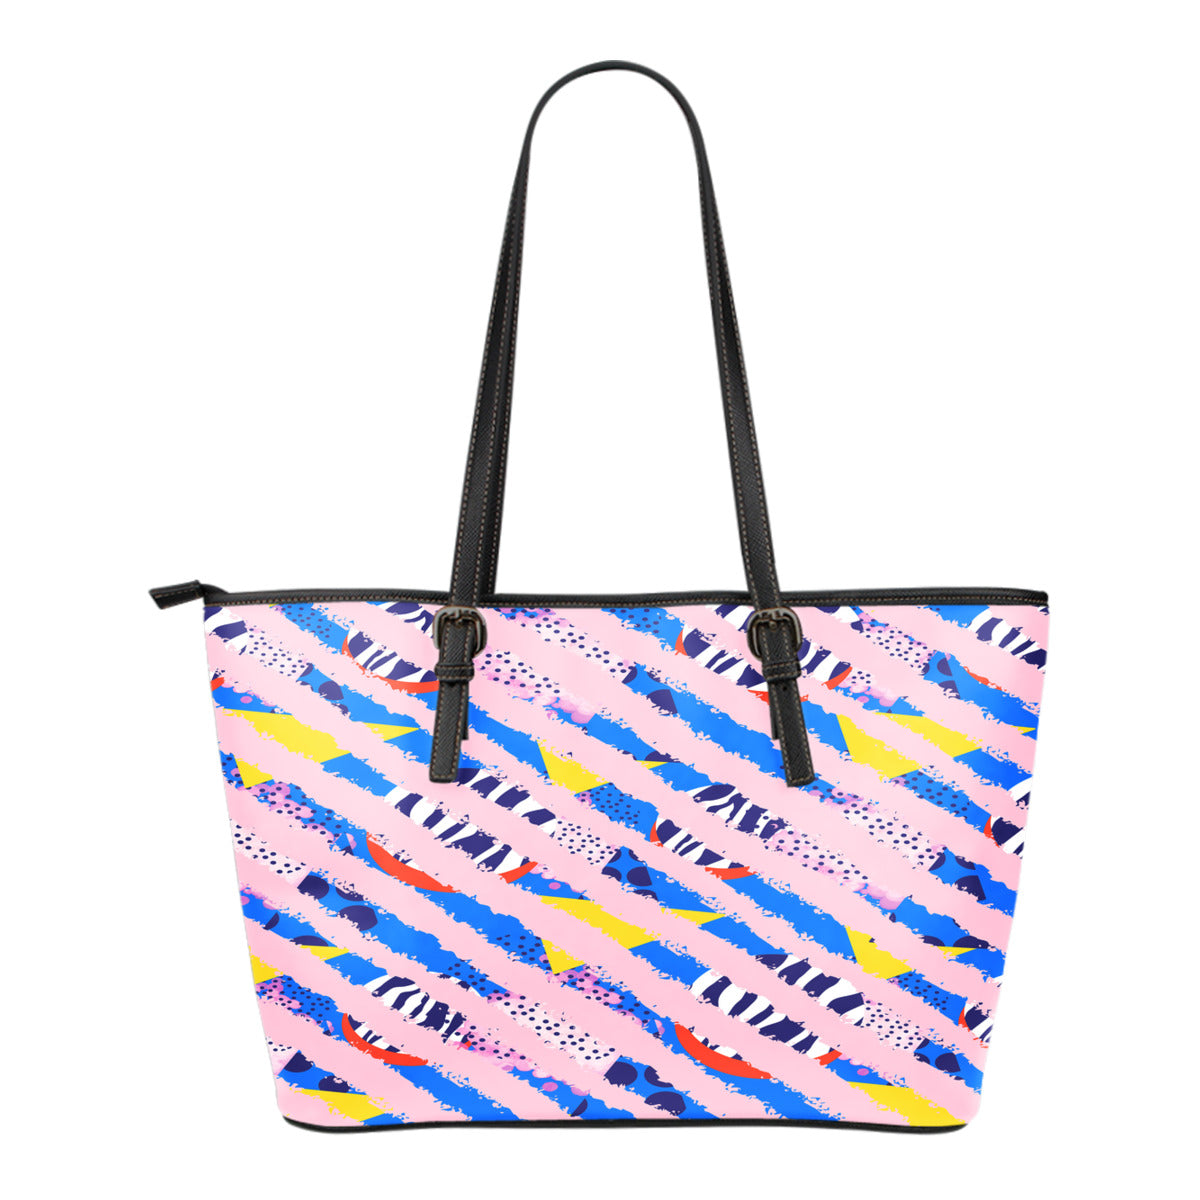 80s Fashion Themed Design C15 Women Small Leather Tote Bag